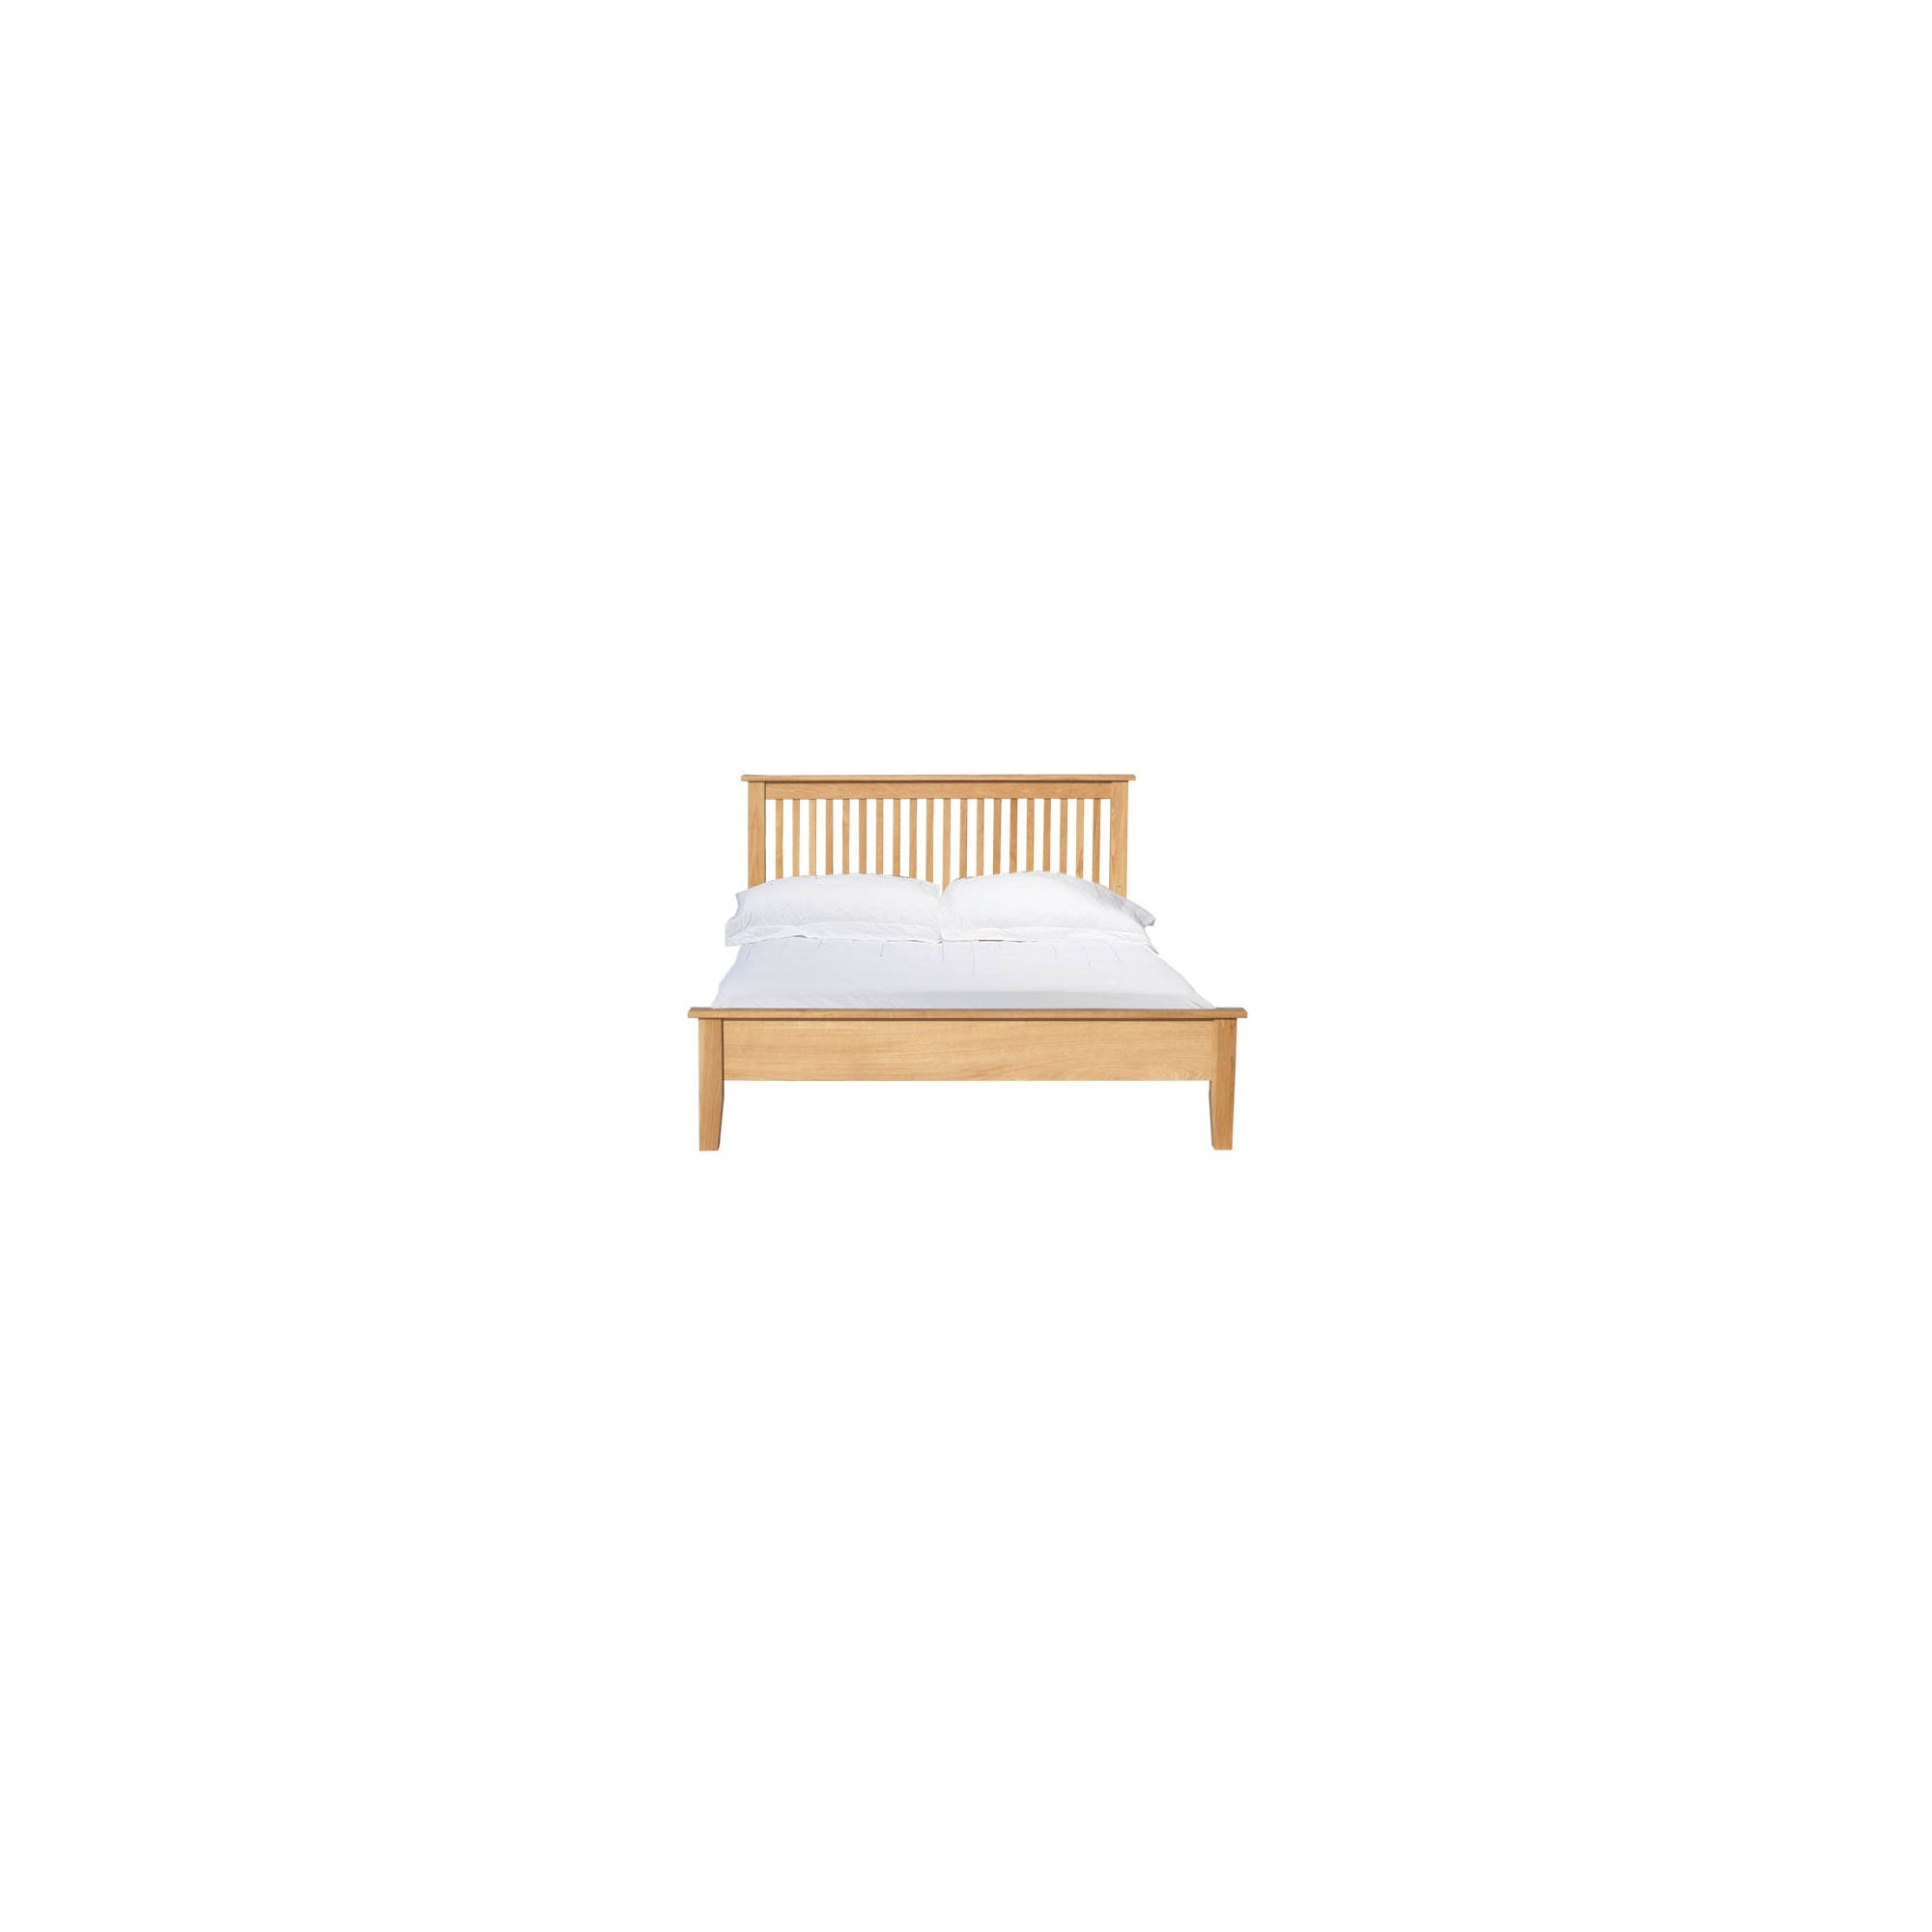 Home Zone Furniture Lincoln Bed Frame - King at Tesco Direct